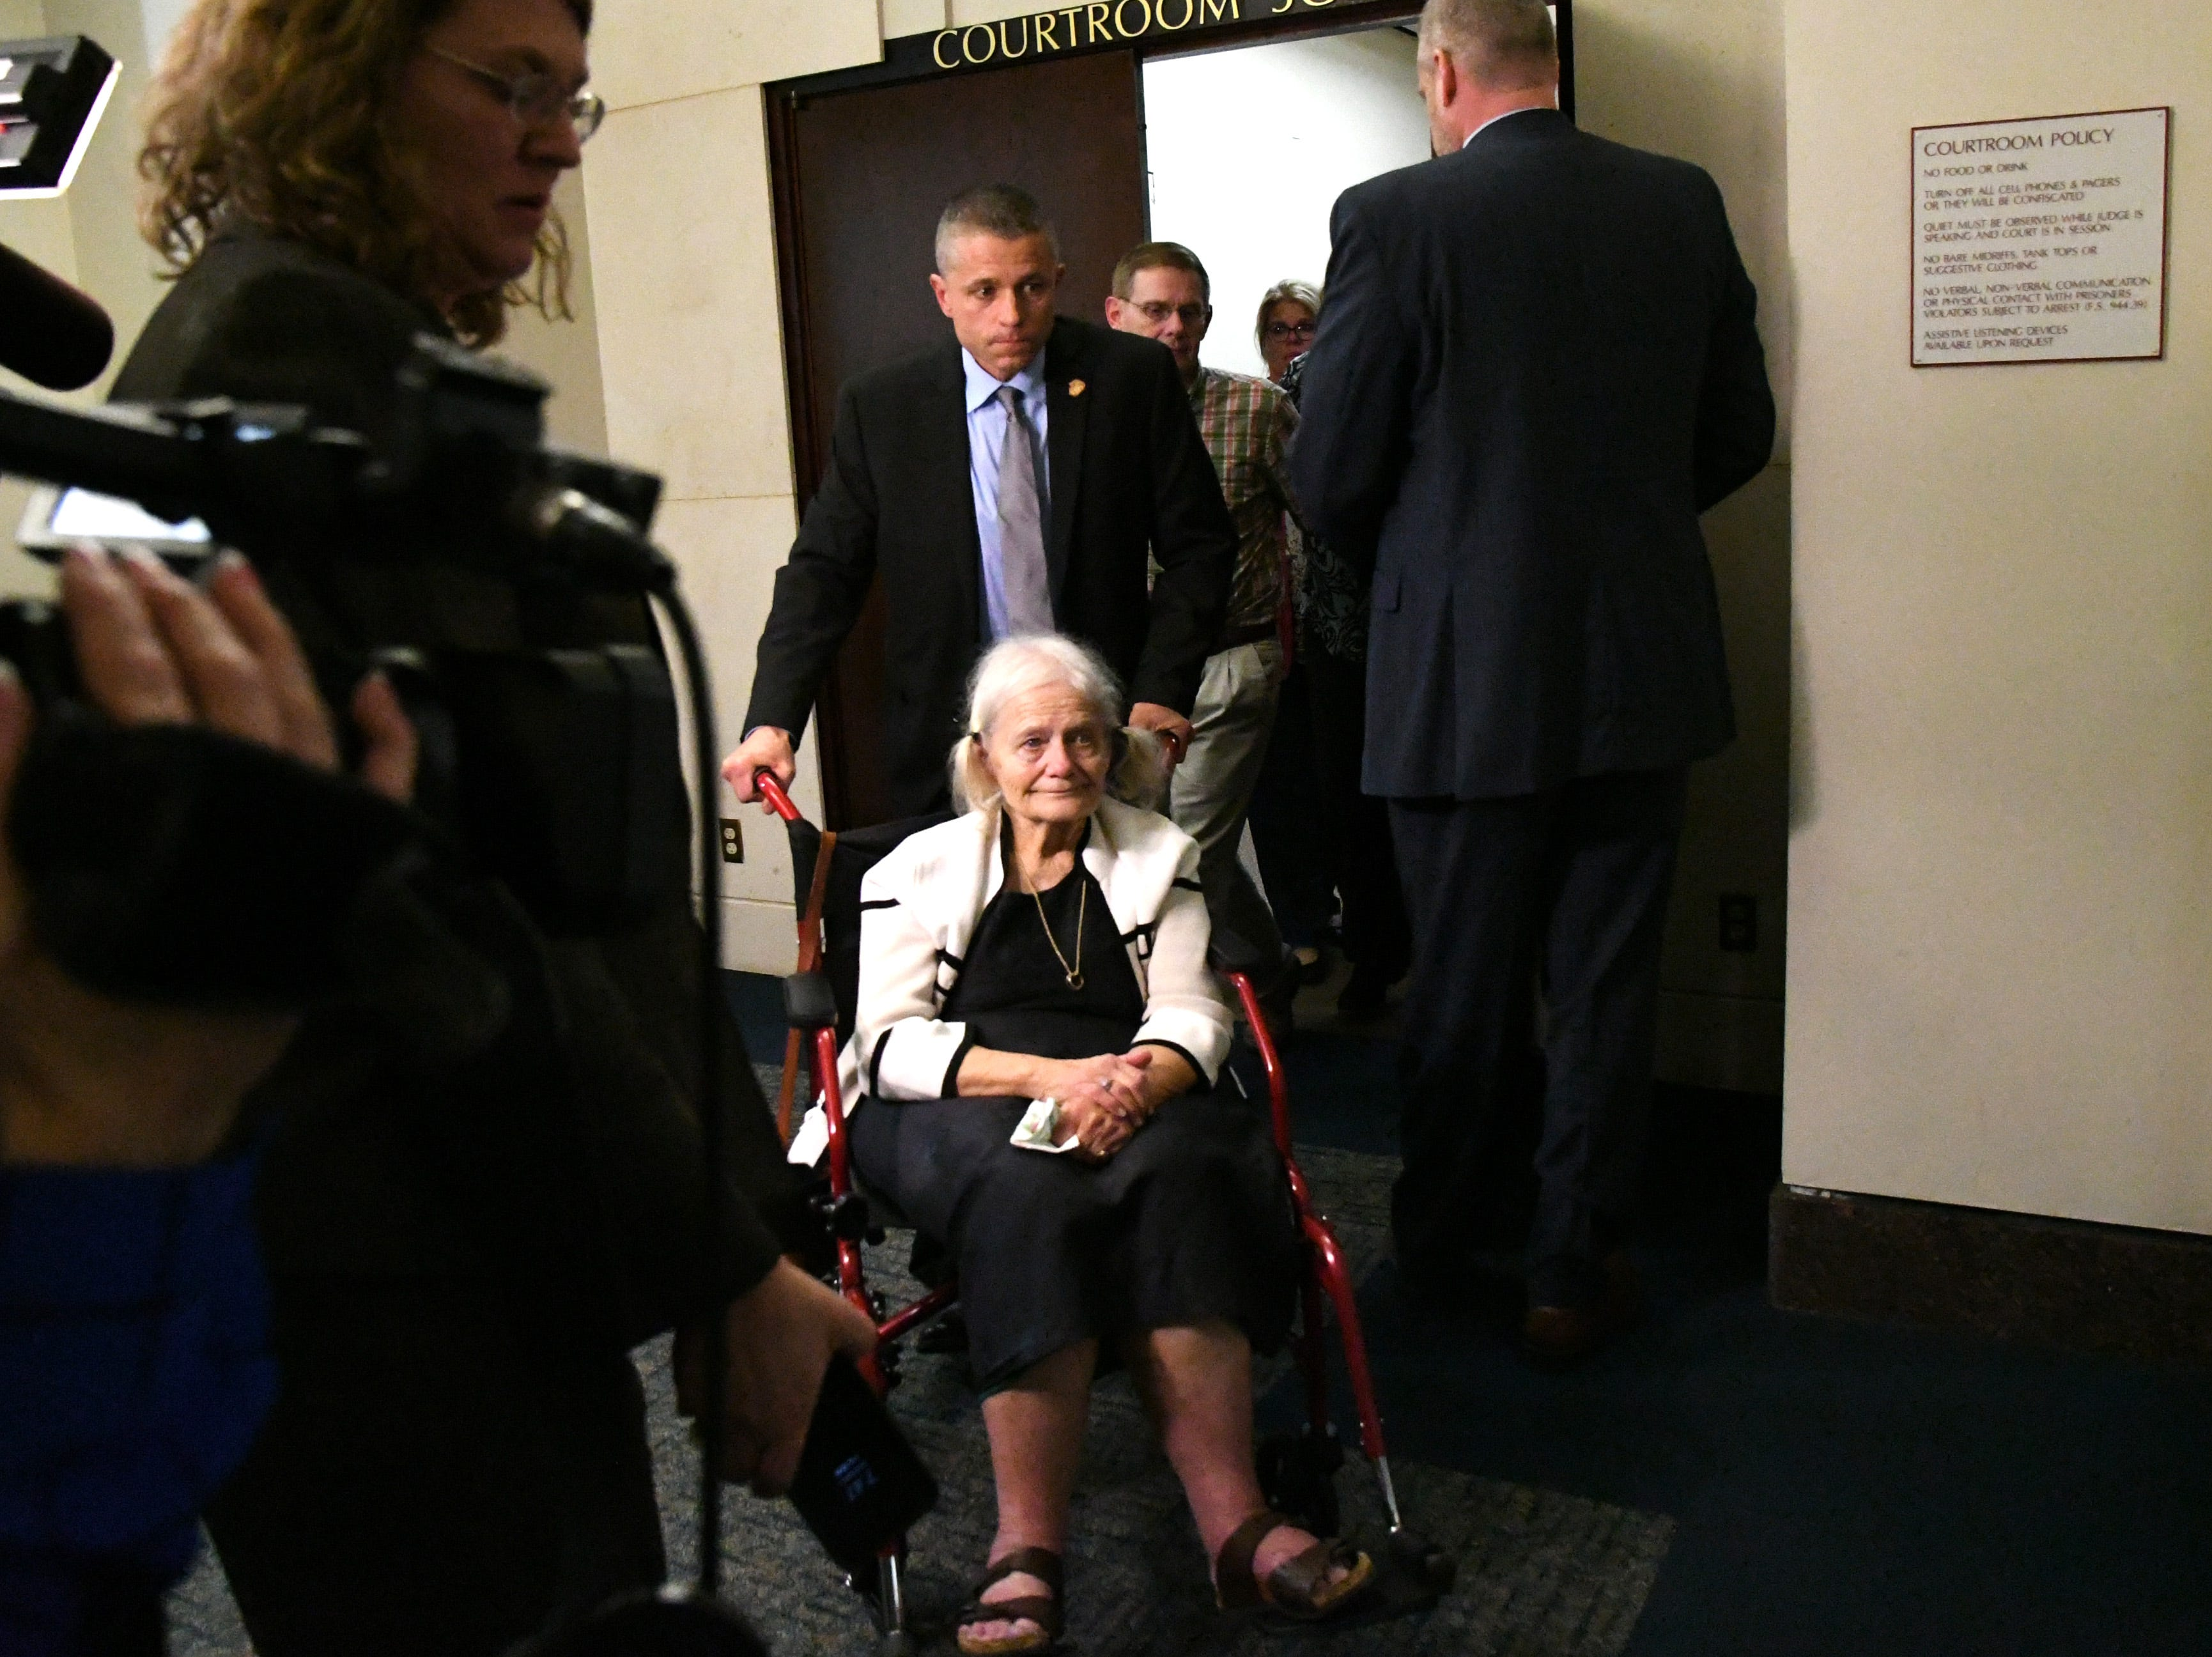 Cheryl Williams, mother of Mike Williams, the man who was shot and killed by his best friend Brian Winchester, gets wheeled out of the courtroom after hearing the guilty verdicts being read in the trial against Denise Williams for the murder of her husband Mike Williams, Friday, Dec. 14, 2018.